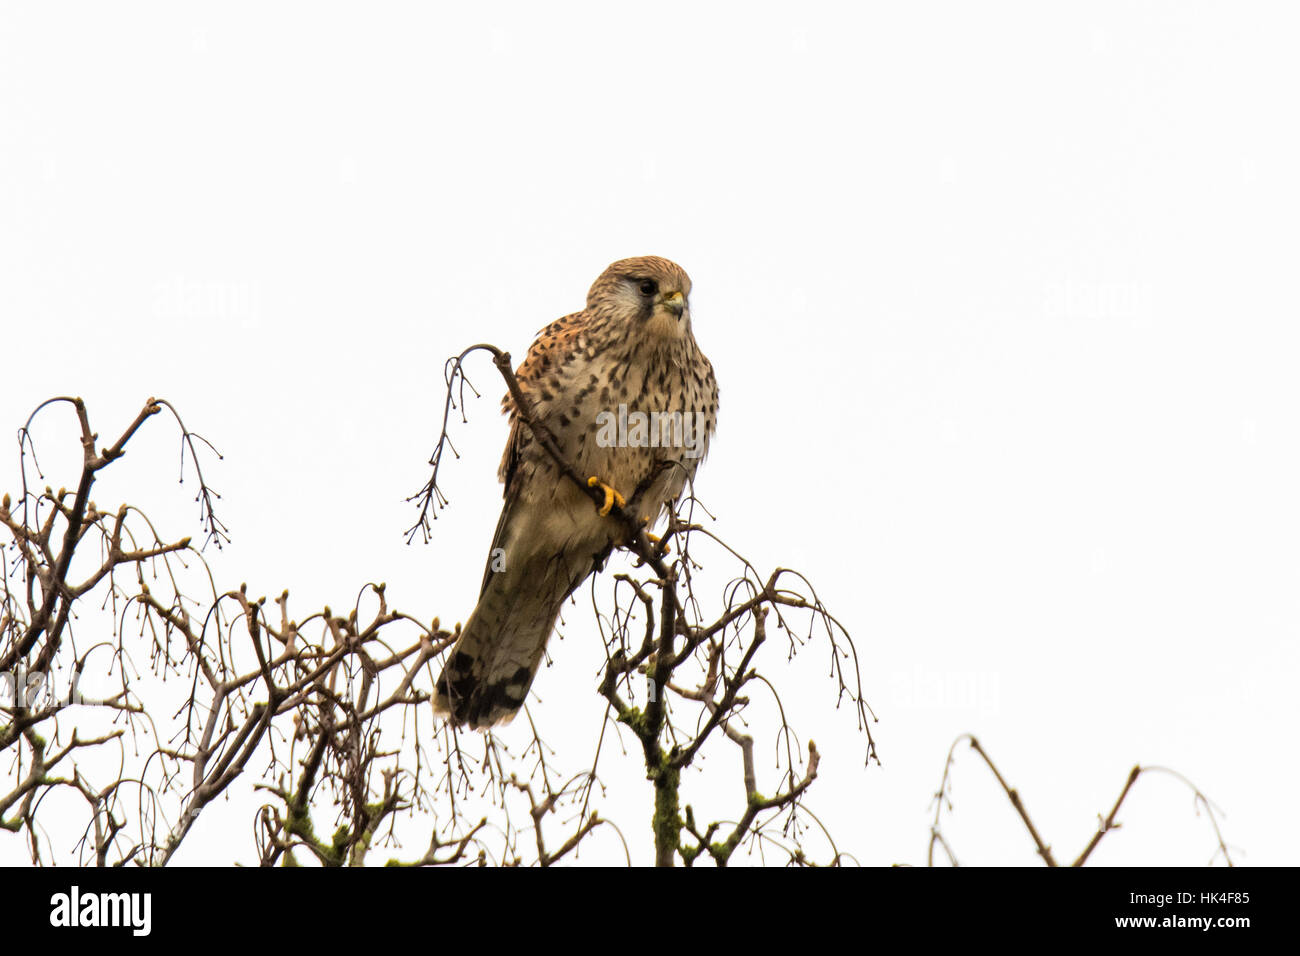 Female kestrel (Falco tinnunculus) in tree. Small falcon (family Falconidae) perched in tree scanning for small - Stock Image